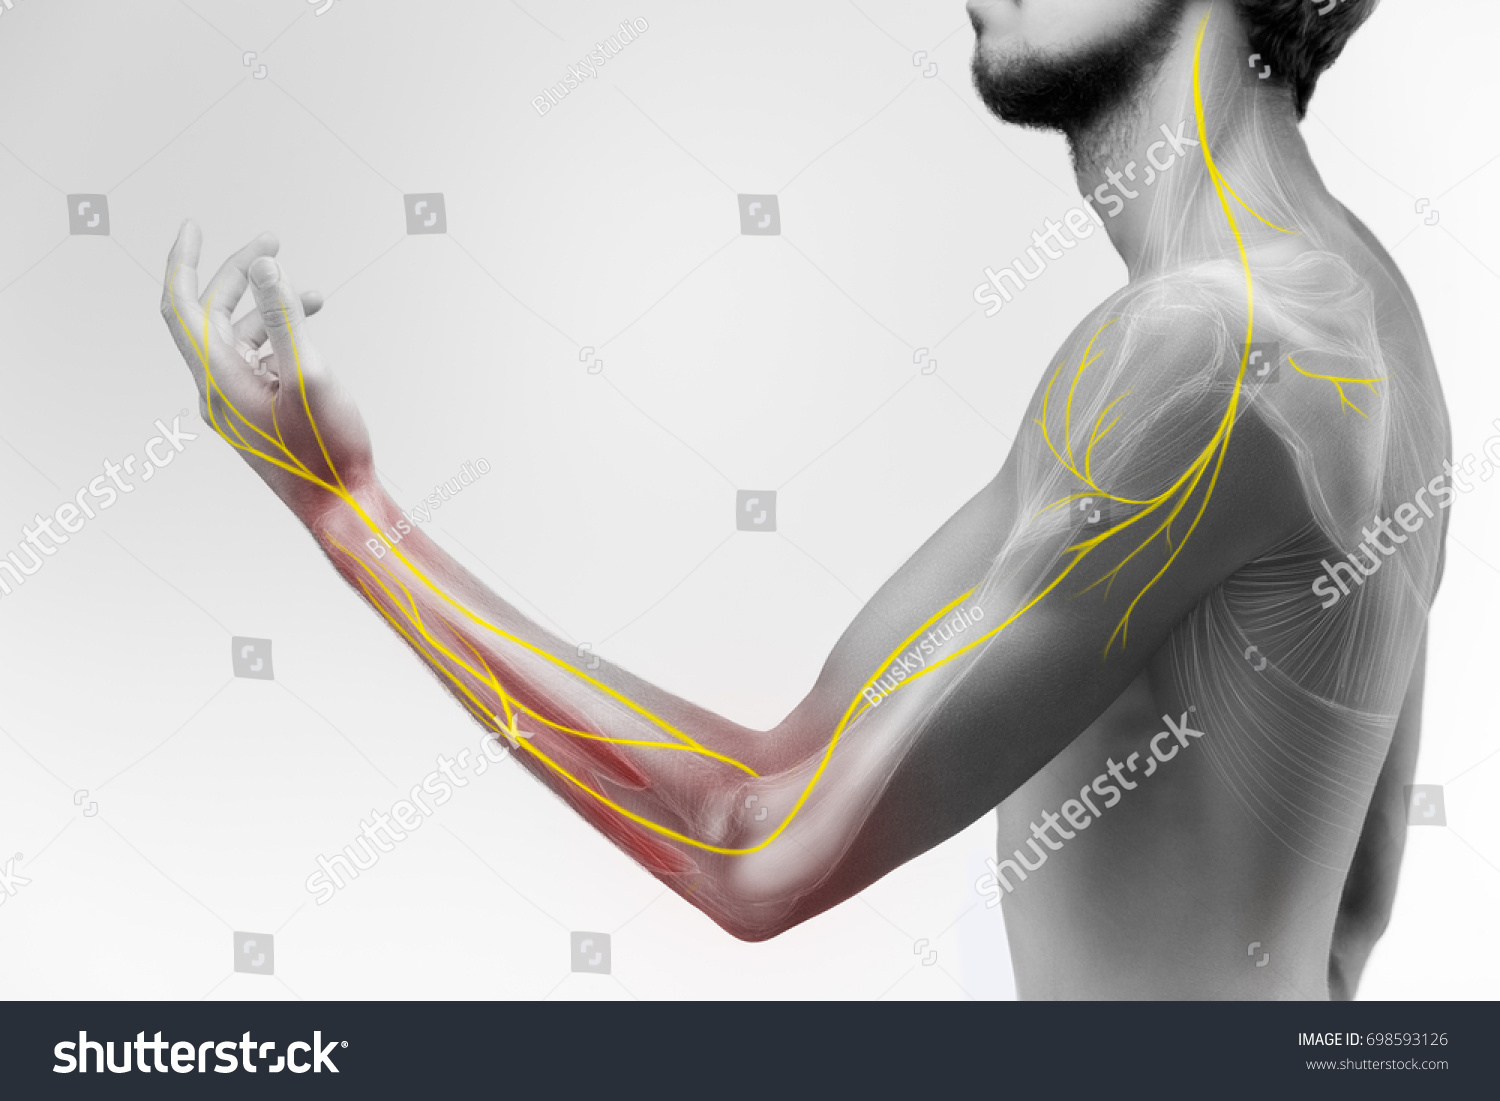 Illustration Human Arm Anatomy Representing Nerves Stock Photo Edit